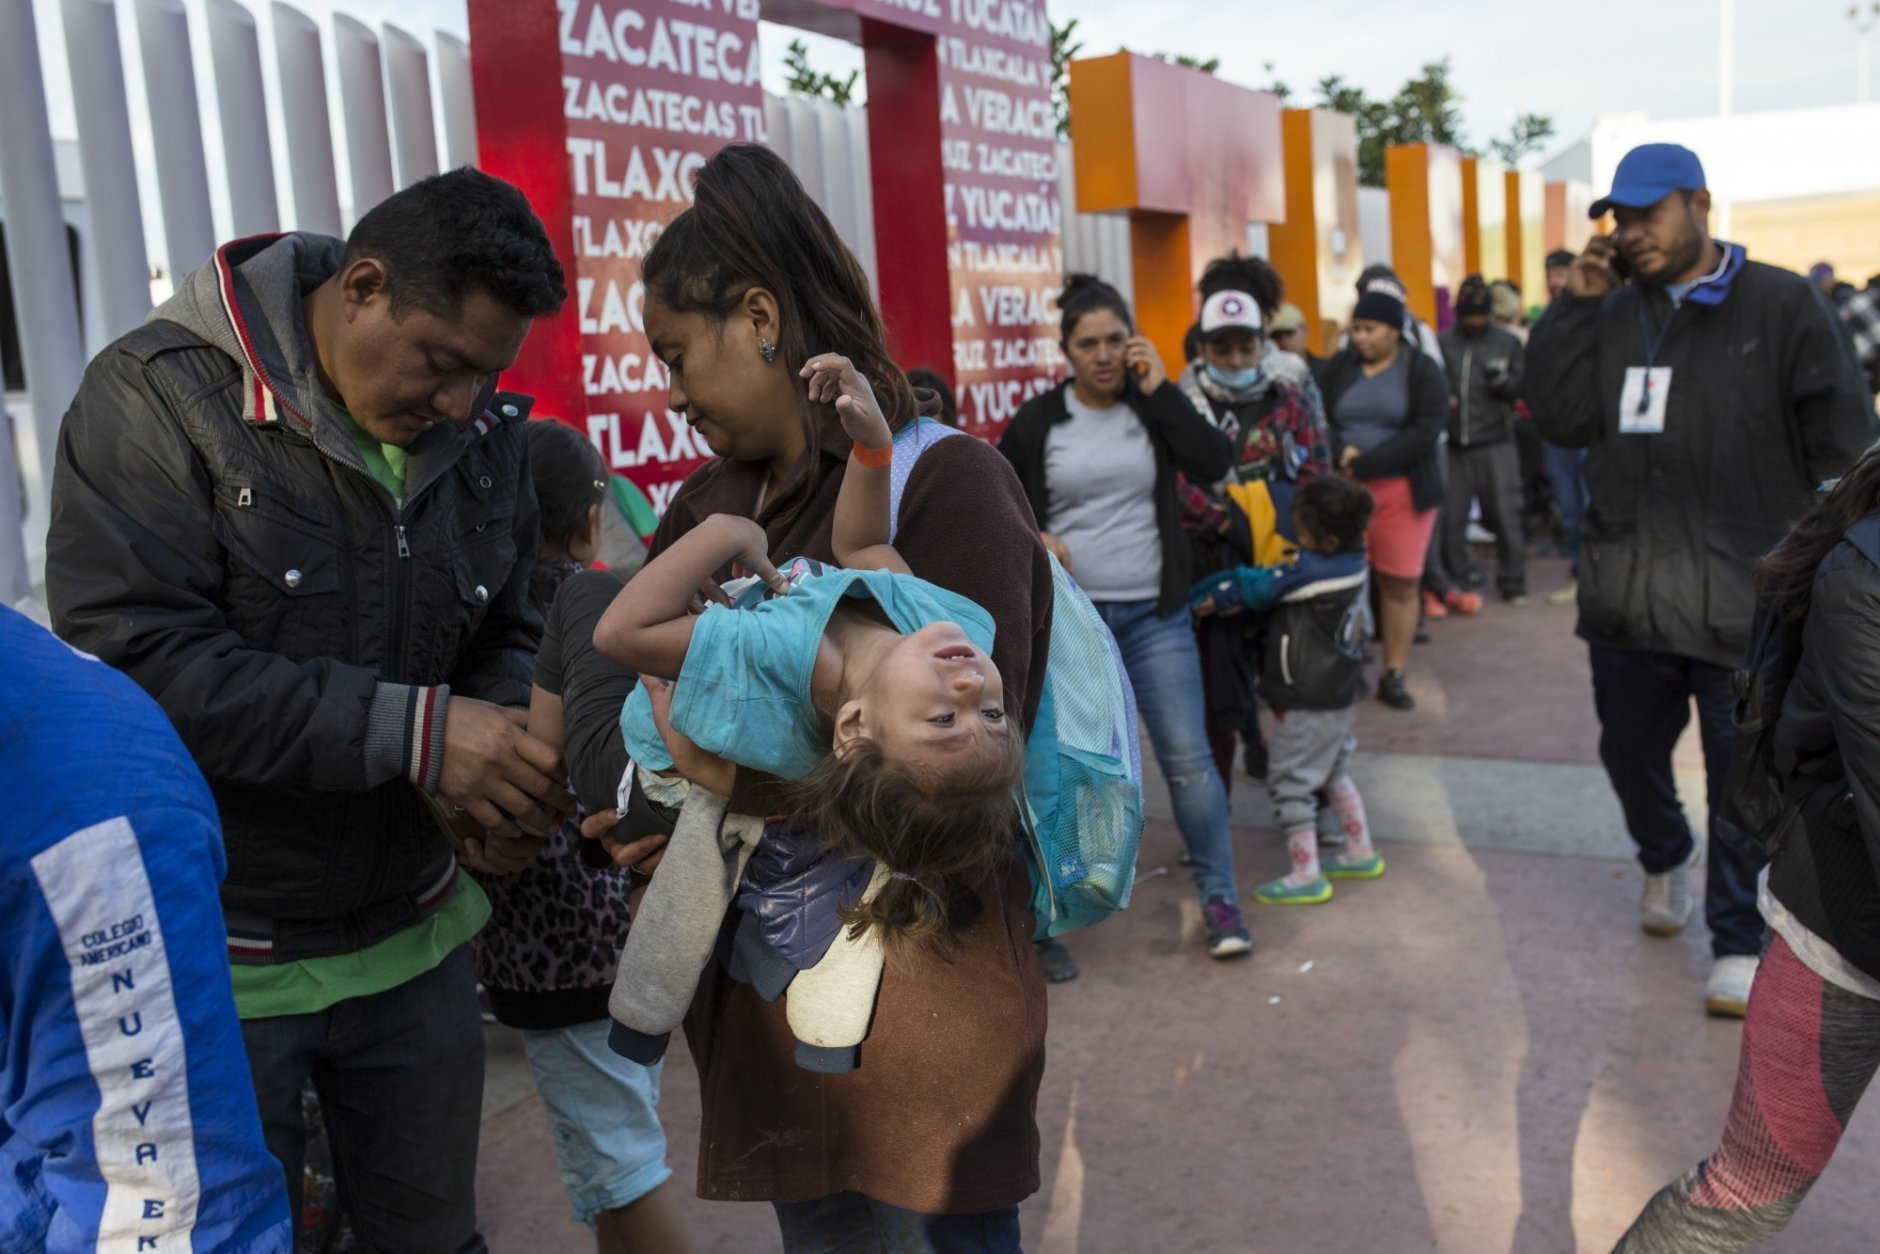 Sairy Hueso, part of the Central American migrant caravan, carries her daughter Etzabe Ponce, as she stands next to her husband while waiting in line to receive a number as part of the process to apply for asylum in the United States, at the border in Tijuana, Mexico Tijuana, Mexico, Friday, Nov. 16, 2018. As thousands of migrants of asylum-seekers converge on the doorstep of the United States, what they won't find are armed American soldiers standing guard, that's because U.S. military troops are prohibited from carrying out law enforcement duties. (AP Photo/Rodrigo Abd)